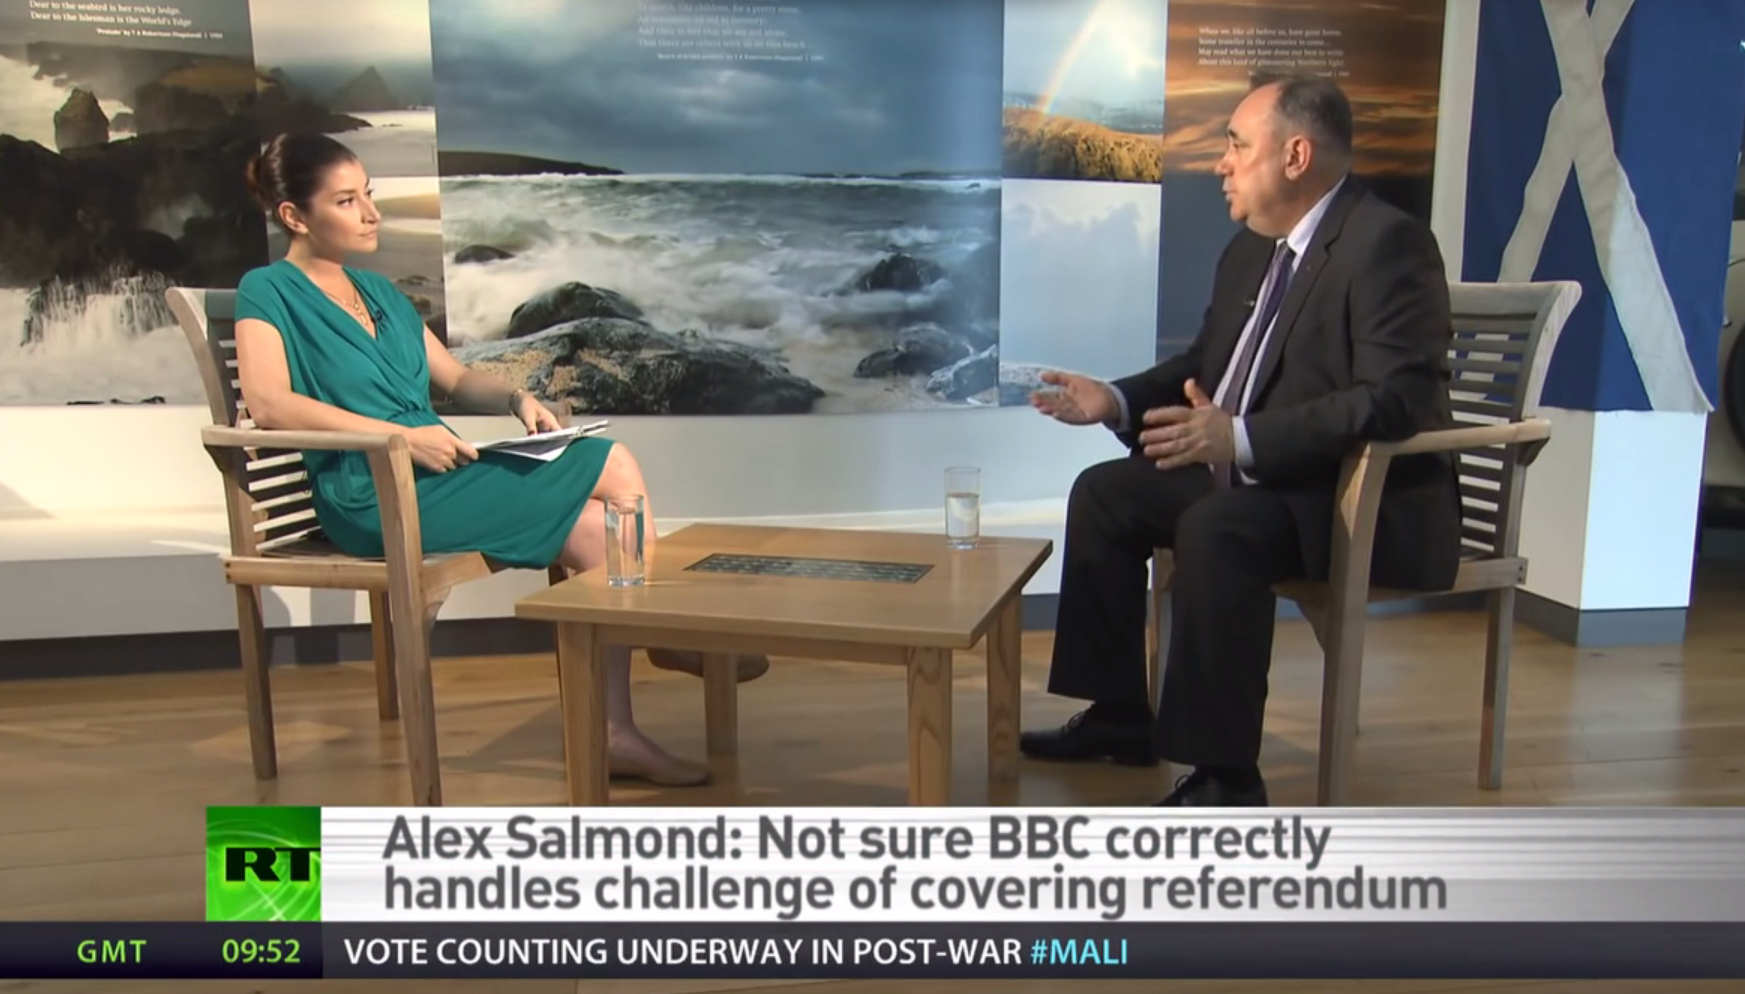 Alex Salmond being interviewed by Sophie Shevardnadze on Russia Today in 2013.